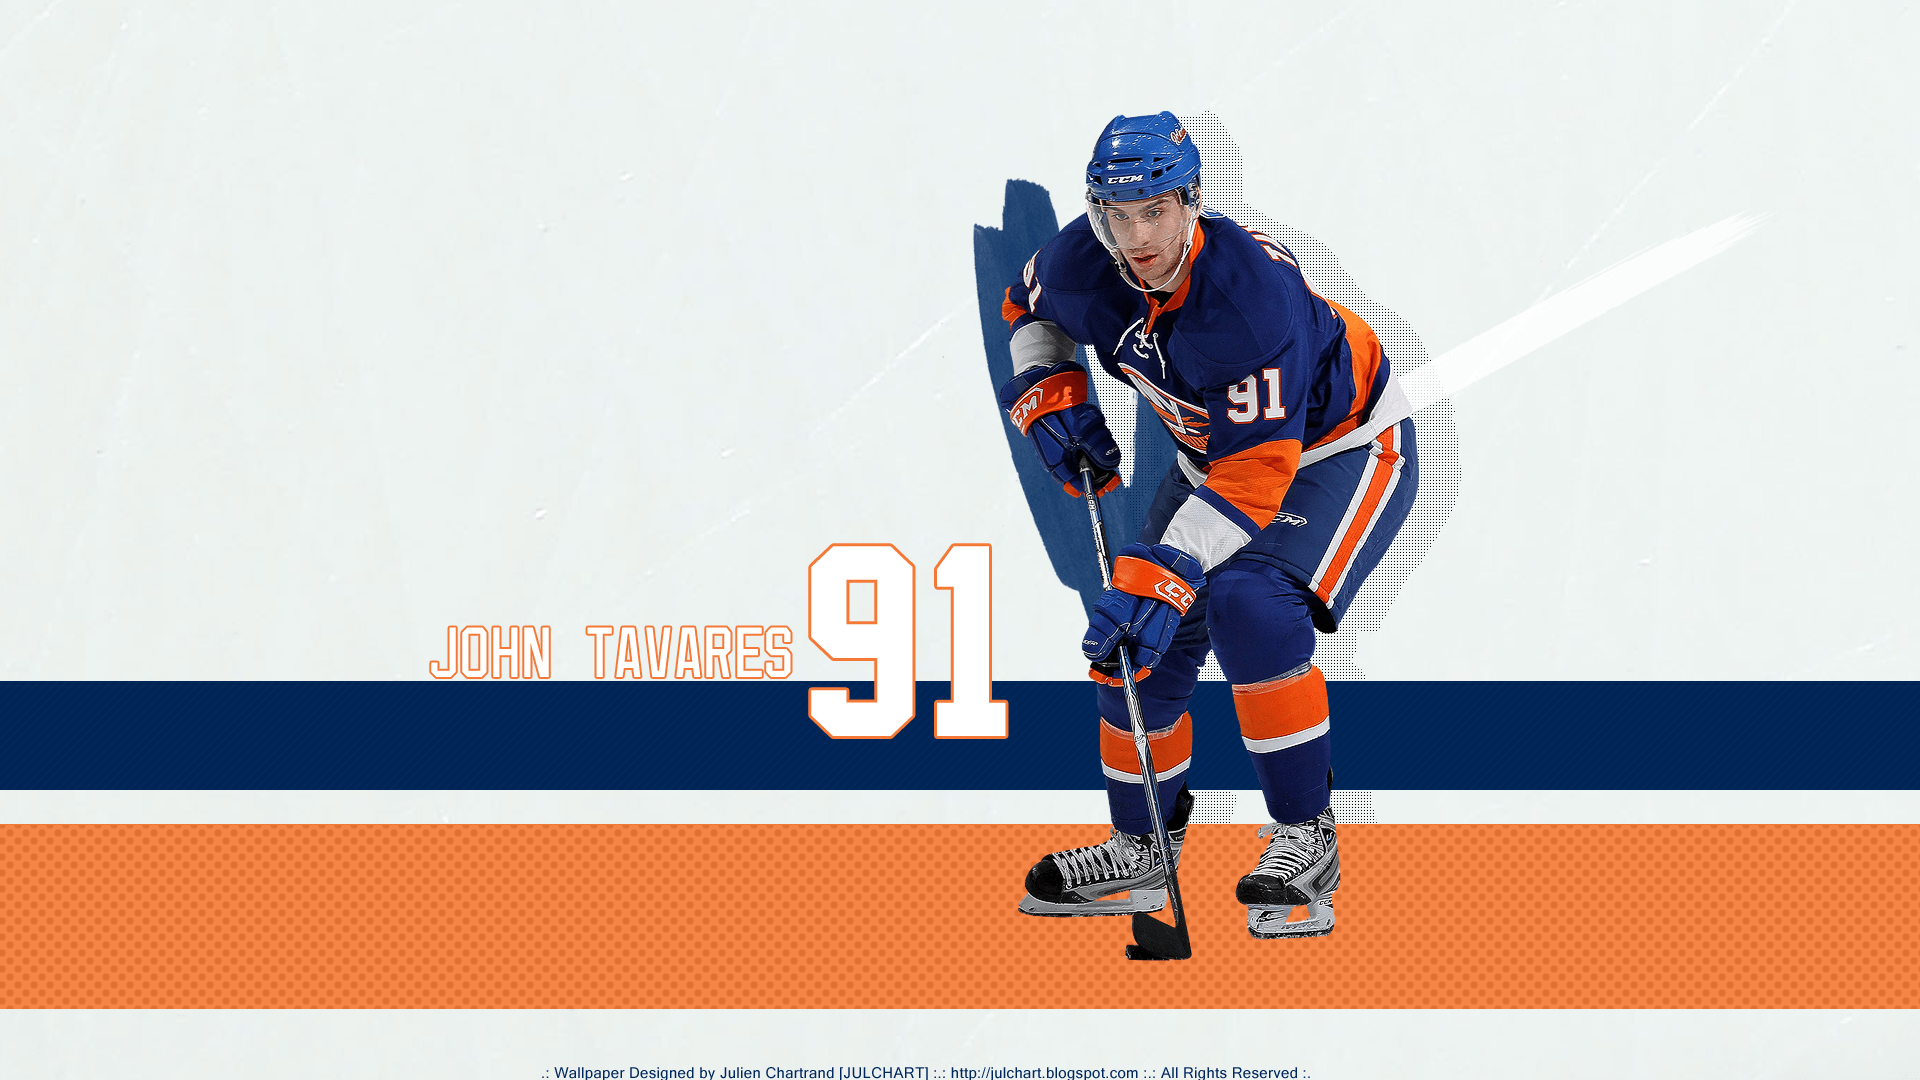 NHL player John Tavares wallpapers and images - wallpapers, pictures ...